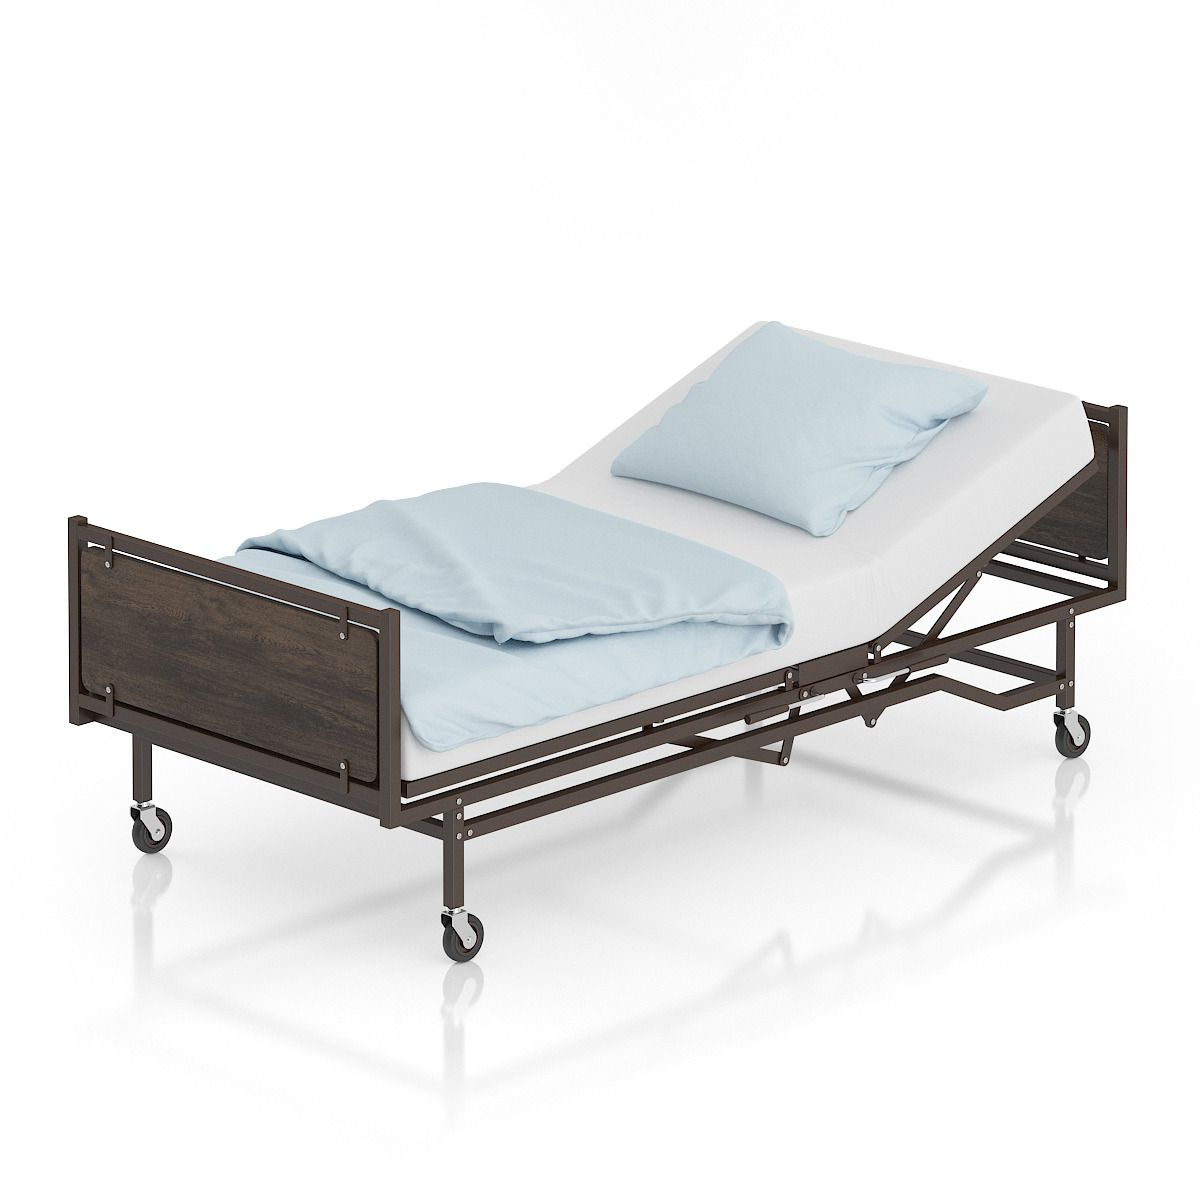 Hospital Bed Hospital Bed Hospital Design Hospital Interior